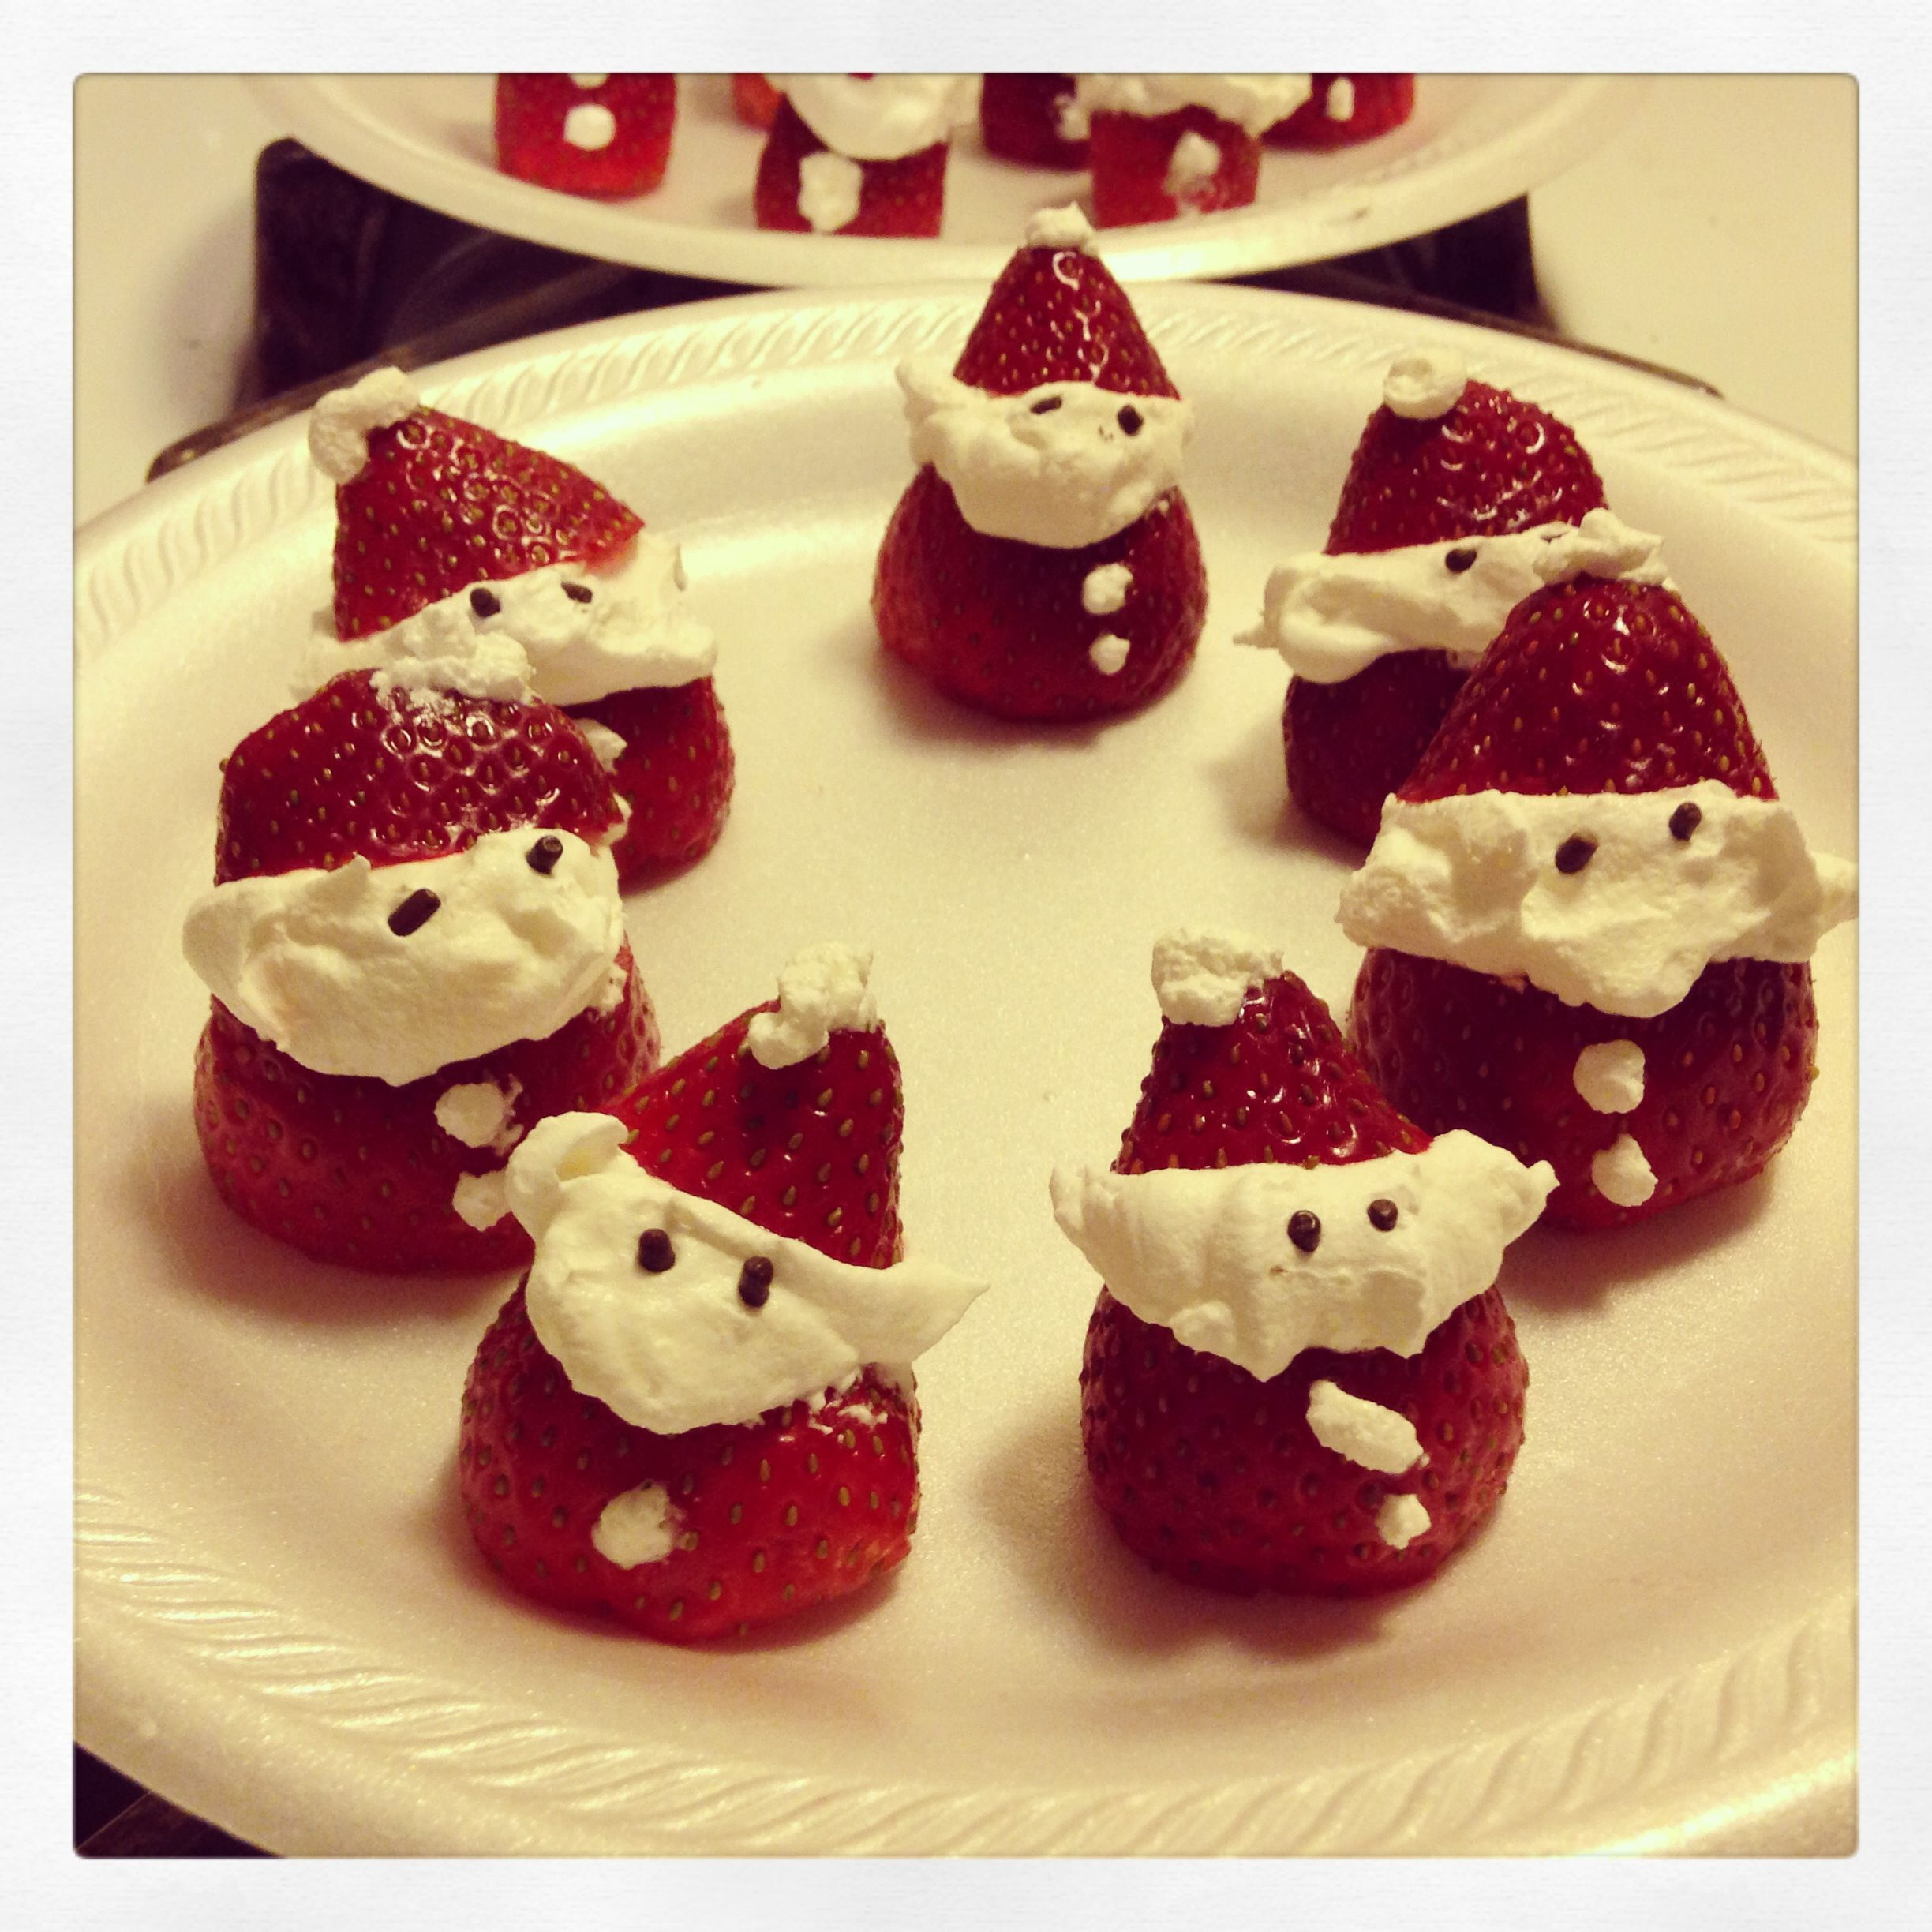 Santa Claus strawberries... cool whip and strawberries ... :)